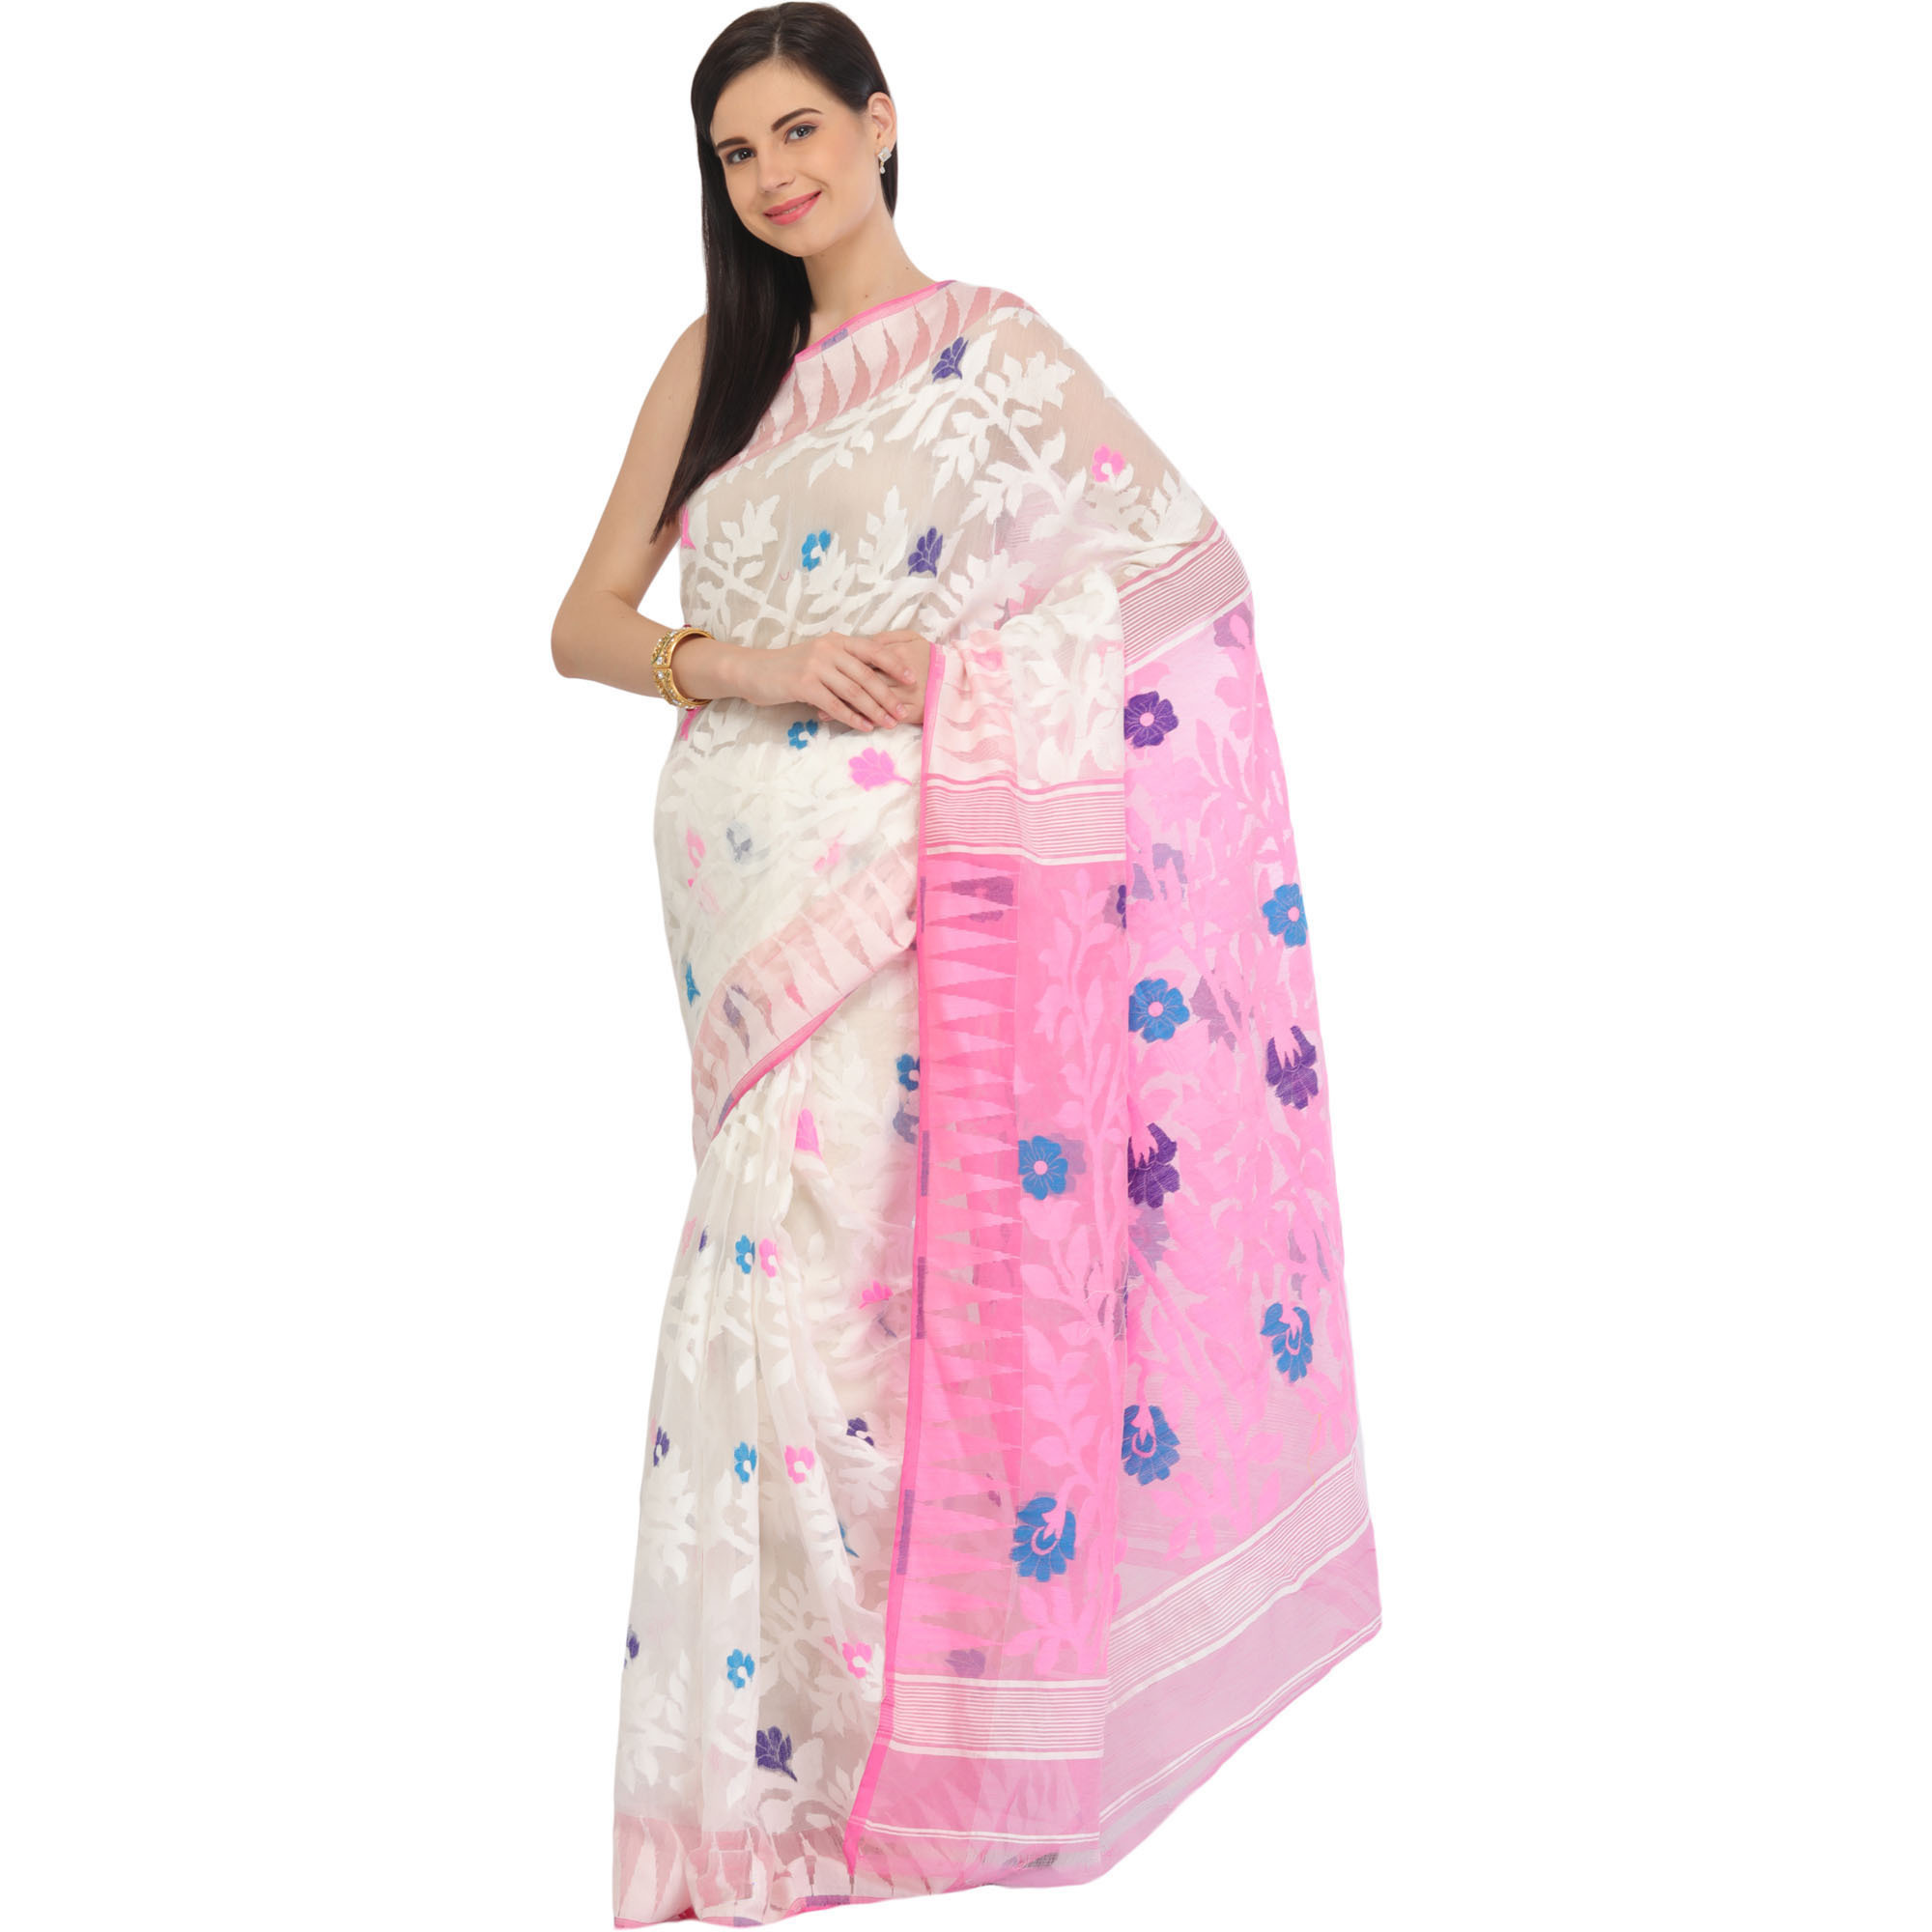 White and Pink Jamdani Sari from Bangladesh with Hand-woven Flowers and Temple Border